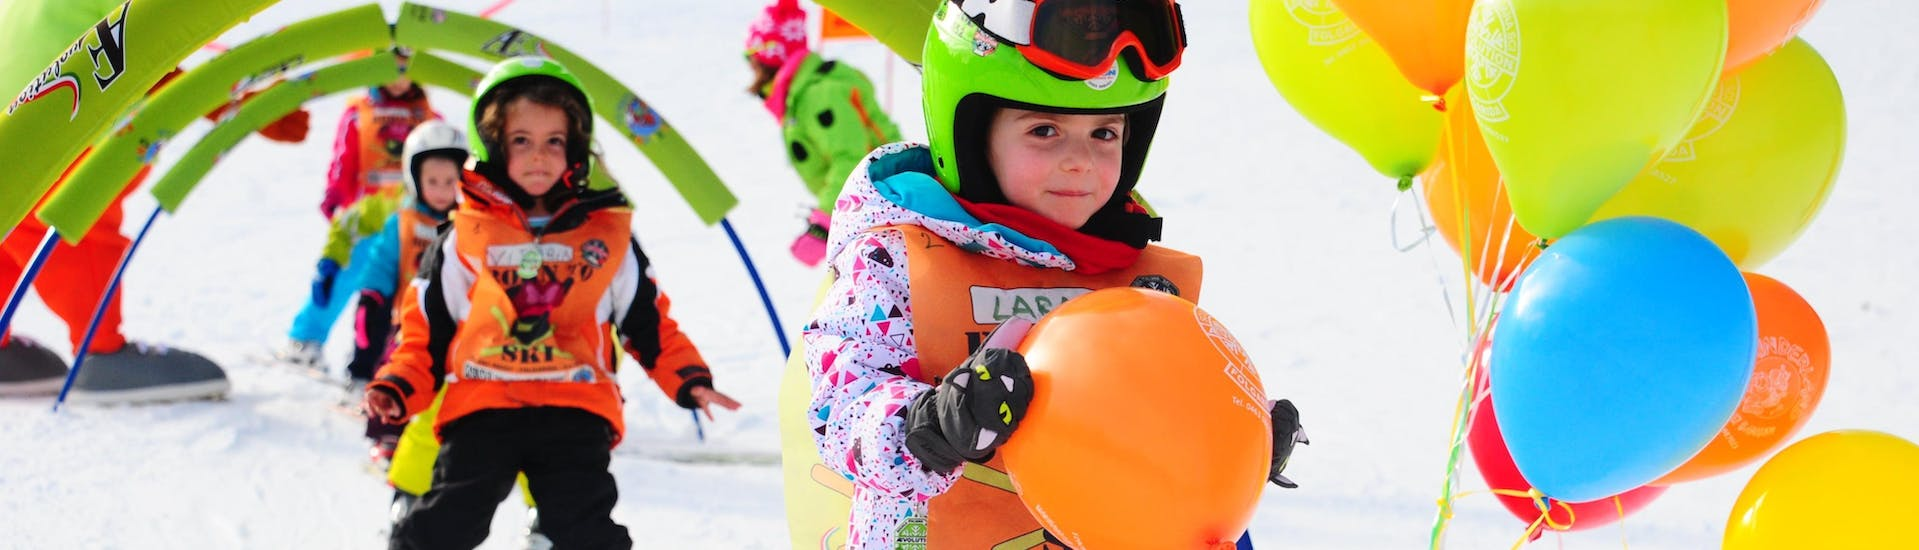 TheKids Ski Lessons (4-13 years) - All Levels of the AEvolution Folgarida Ski School are taking place in the school field; the child overcame the obstacles and deserved a balloon.